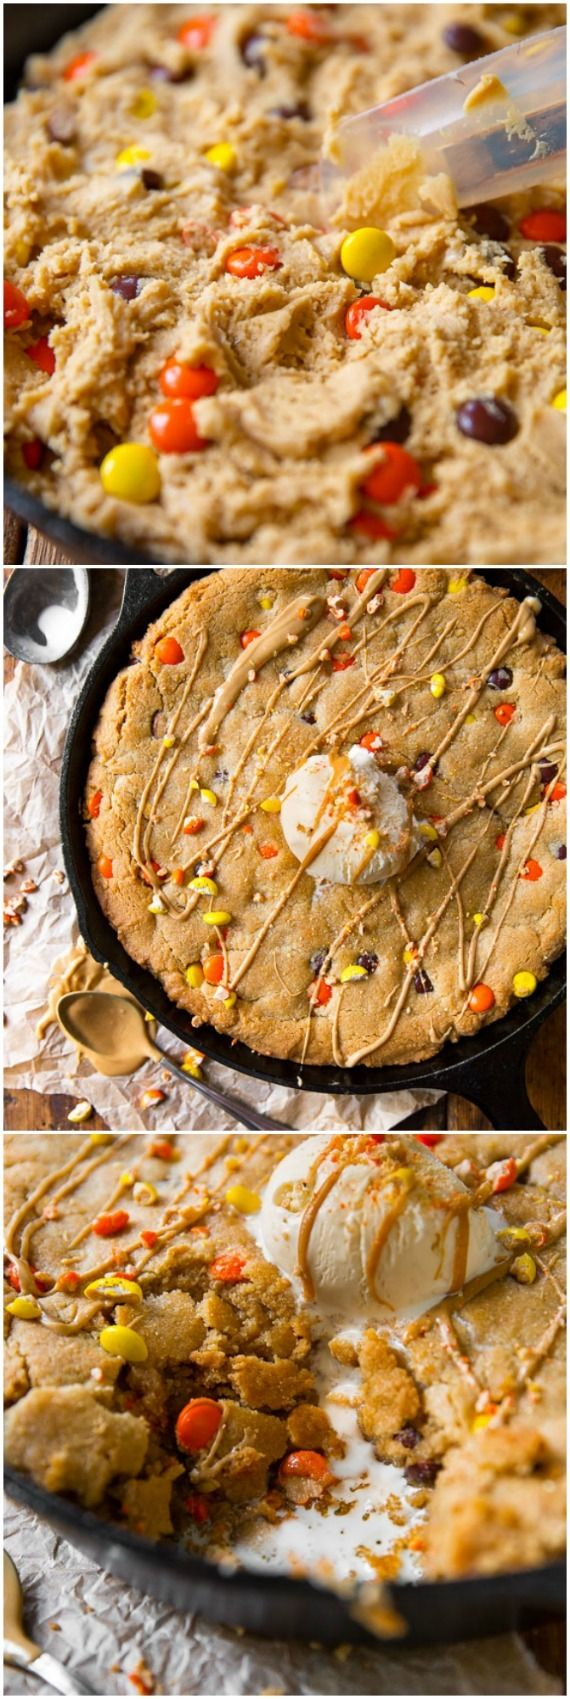 Giant peanut butter skillet cookie meant for digging in! Or bake as mini skillet cookies for an even quicker treat.